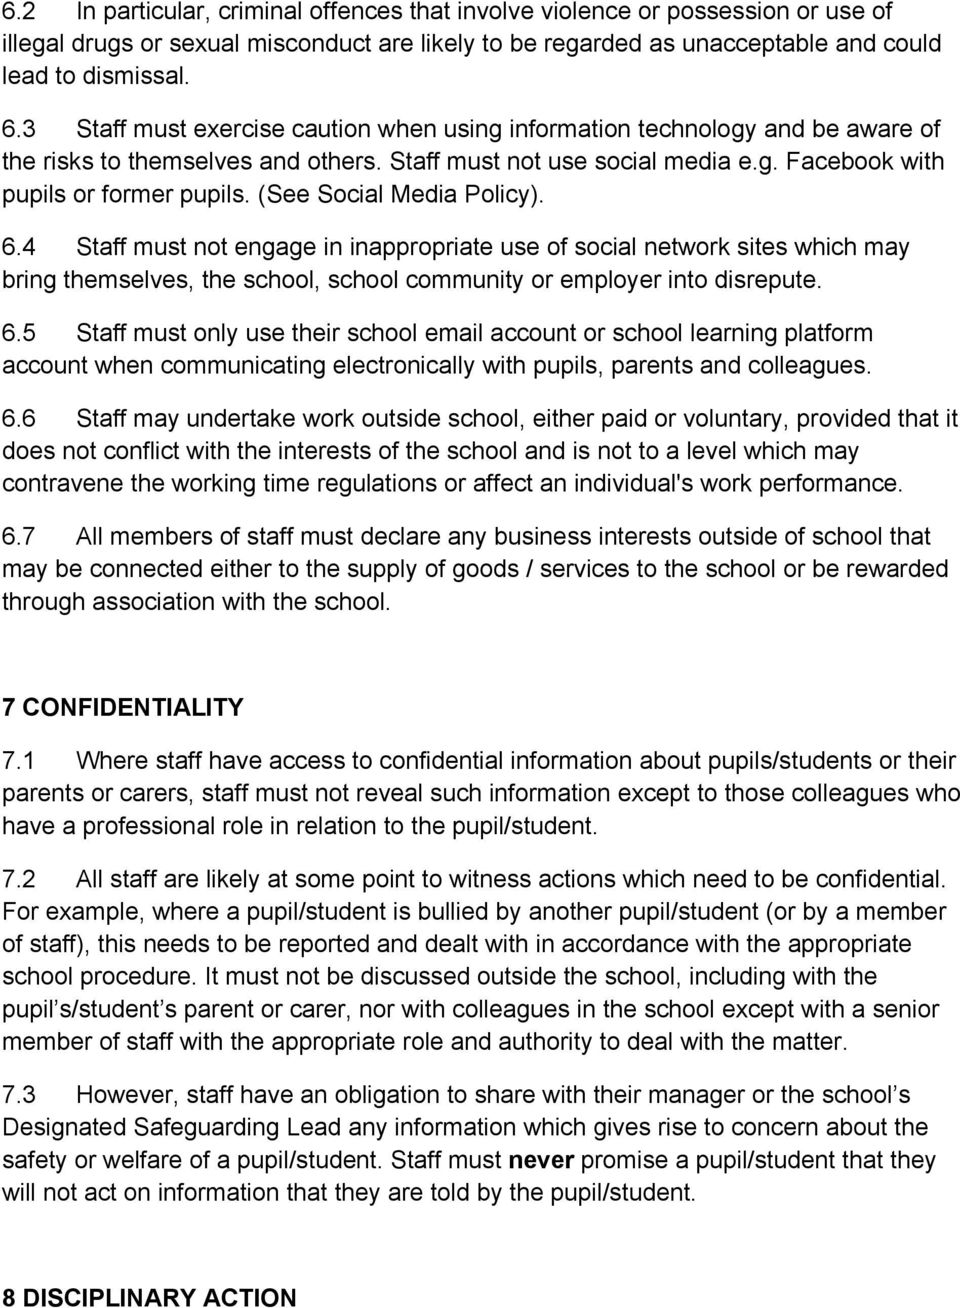 (See Social Media Policy). 6.4 Staff must not engage in inappropriate use of social network sites which may bring themselves, the school, school community or employer into disrepute. 6.5 Staff must only use their school email account or school learning platform account when communicating electronically with pupils, parents and colleagues.